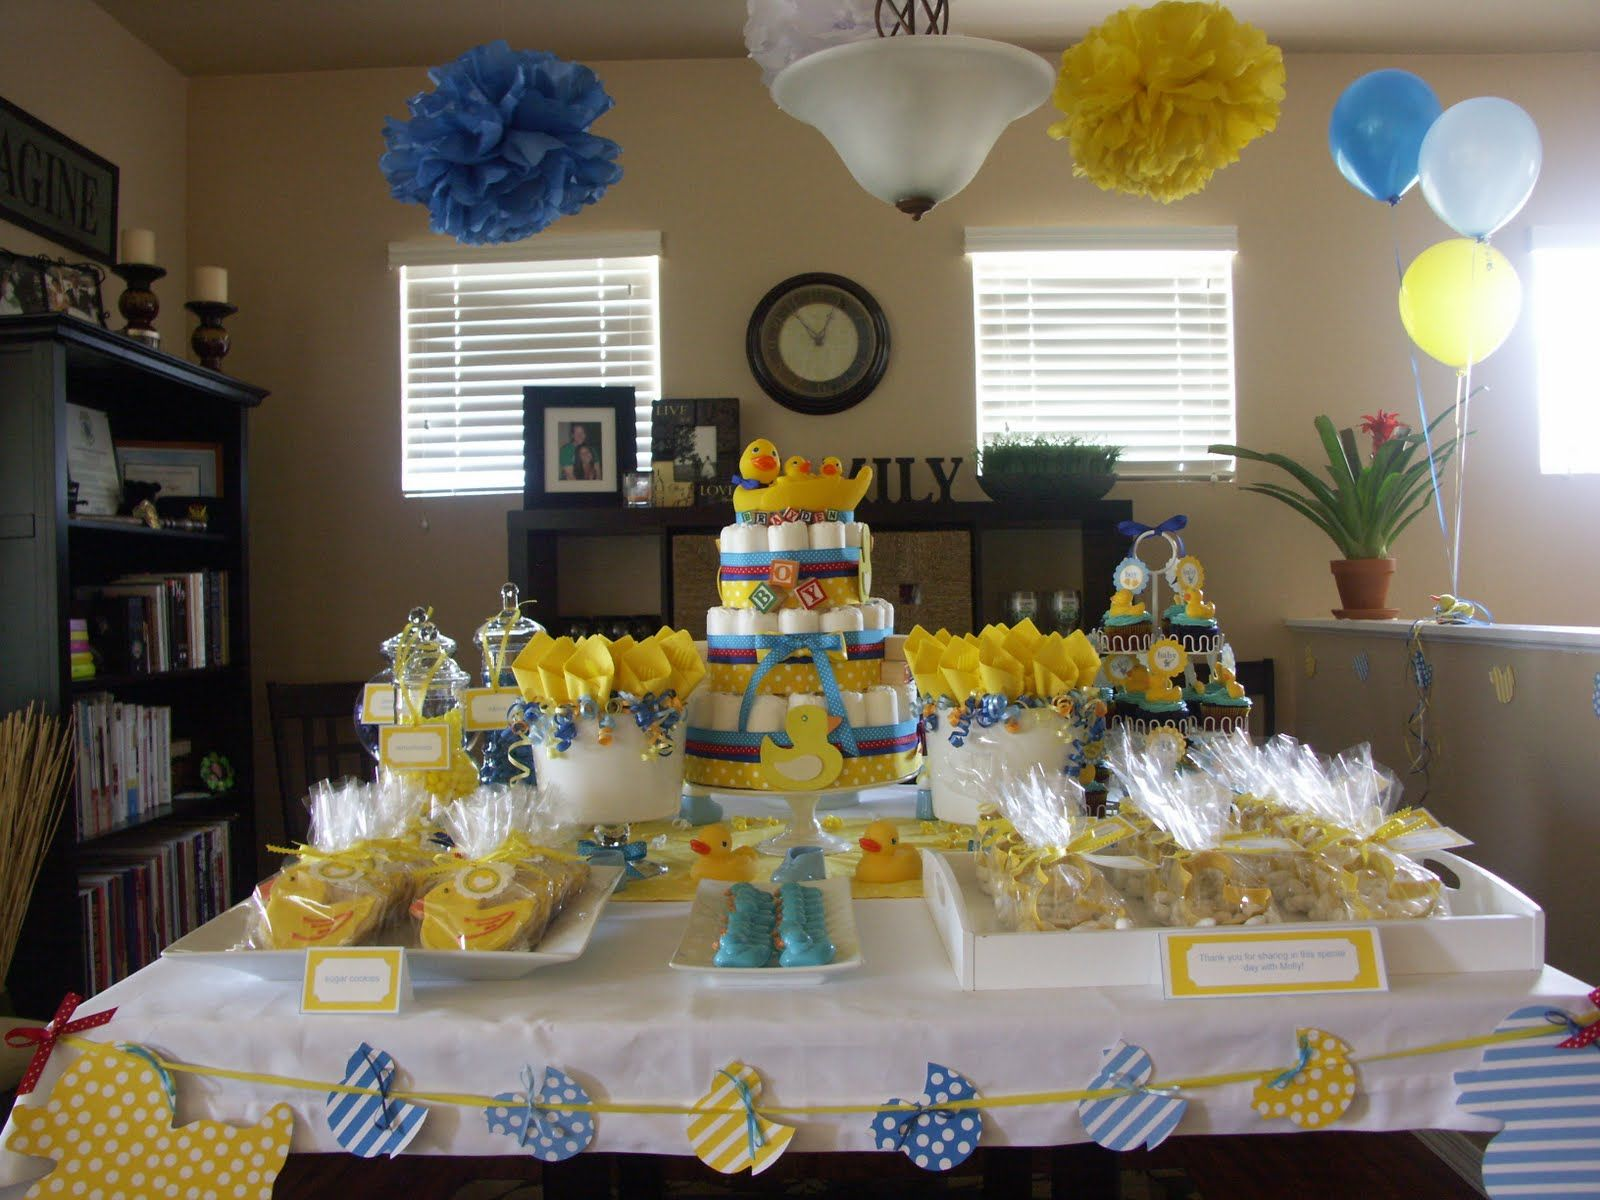 50 best rubber ducky images on pinterest ducky baby showers